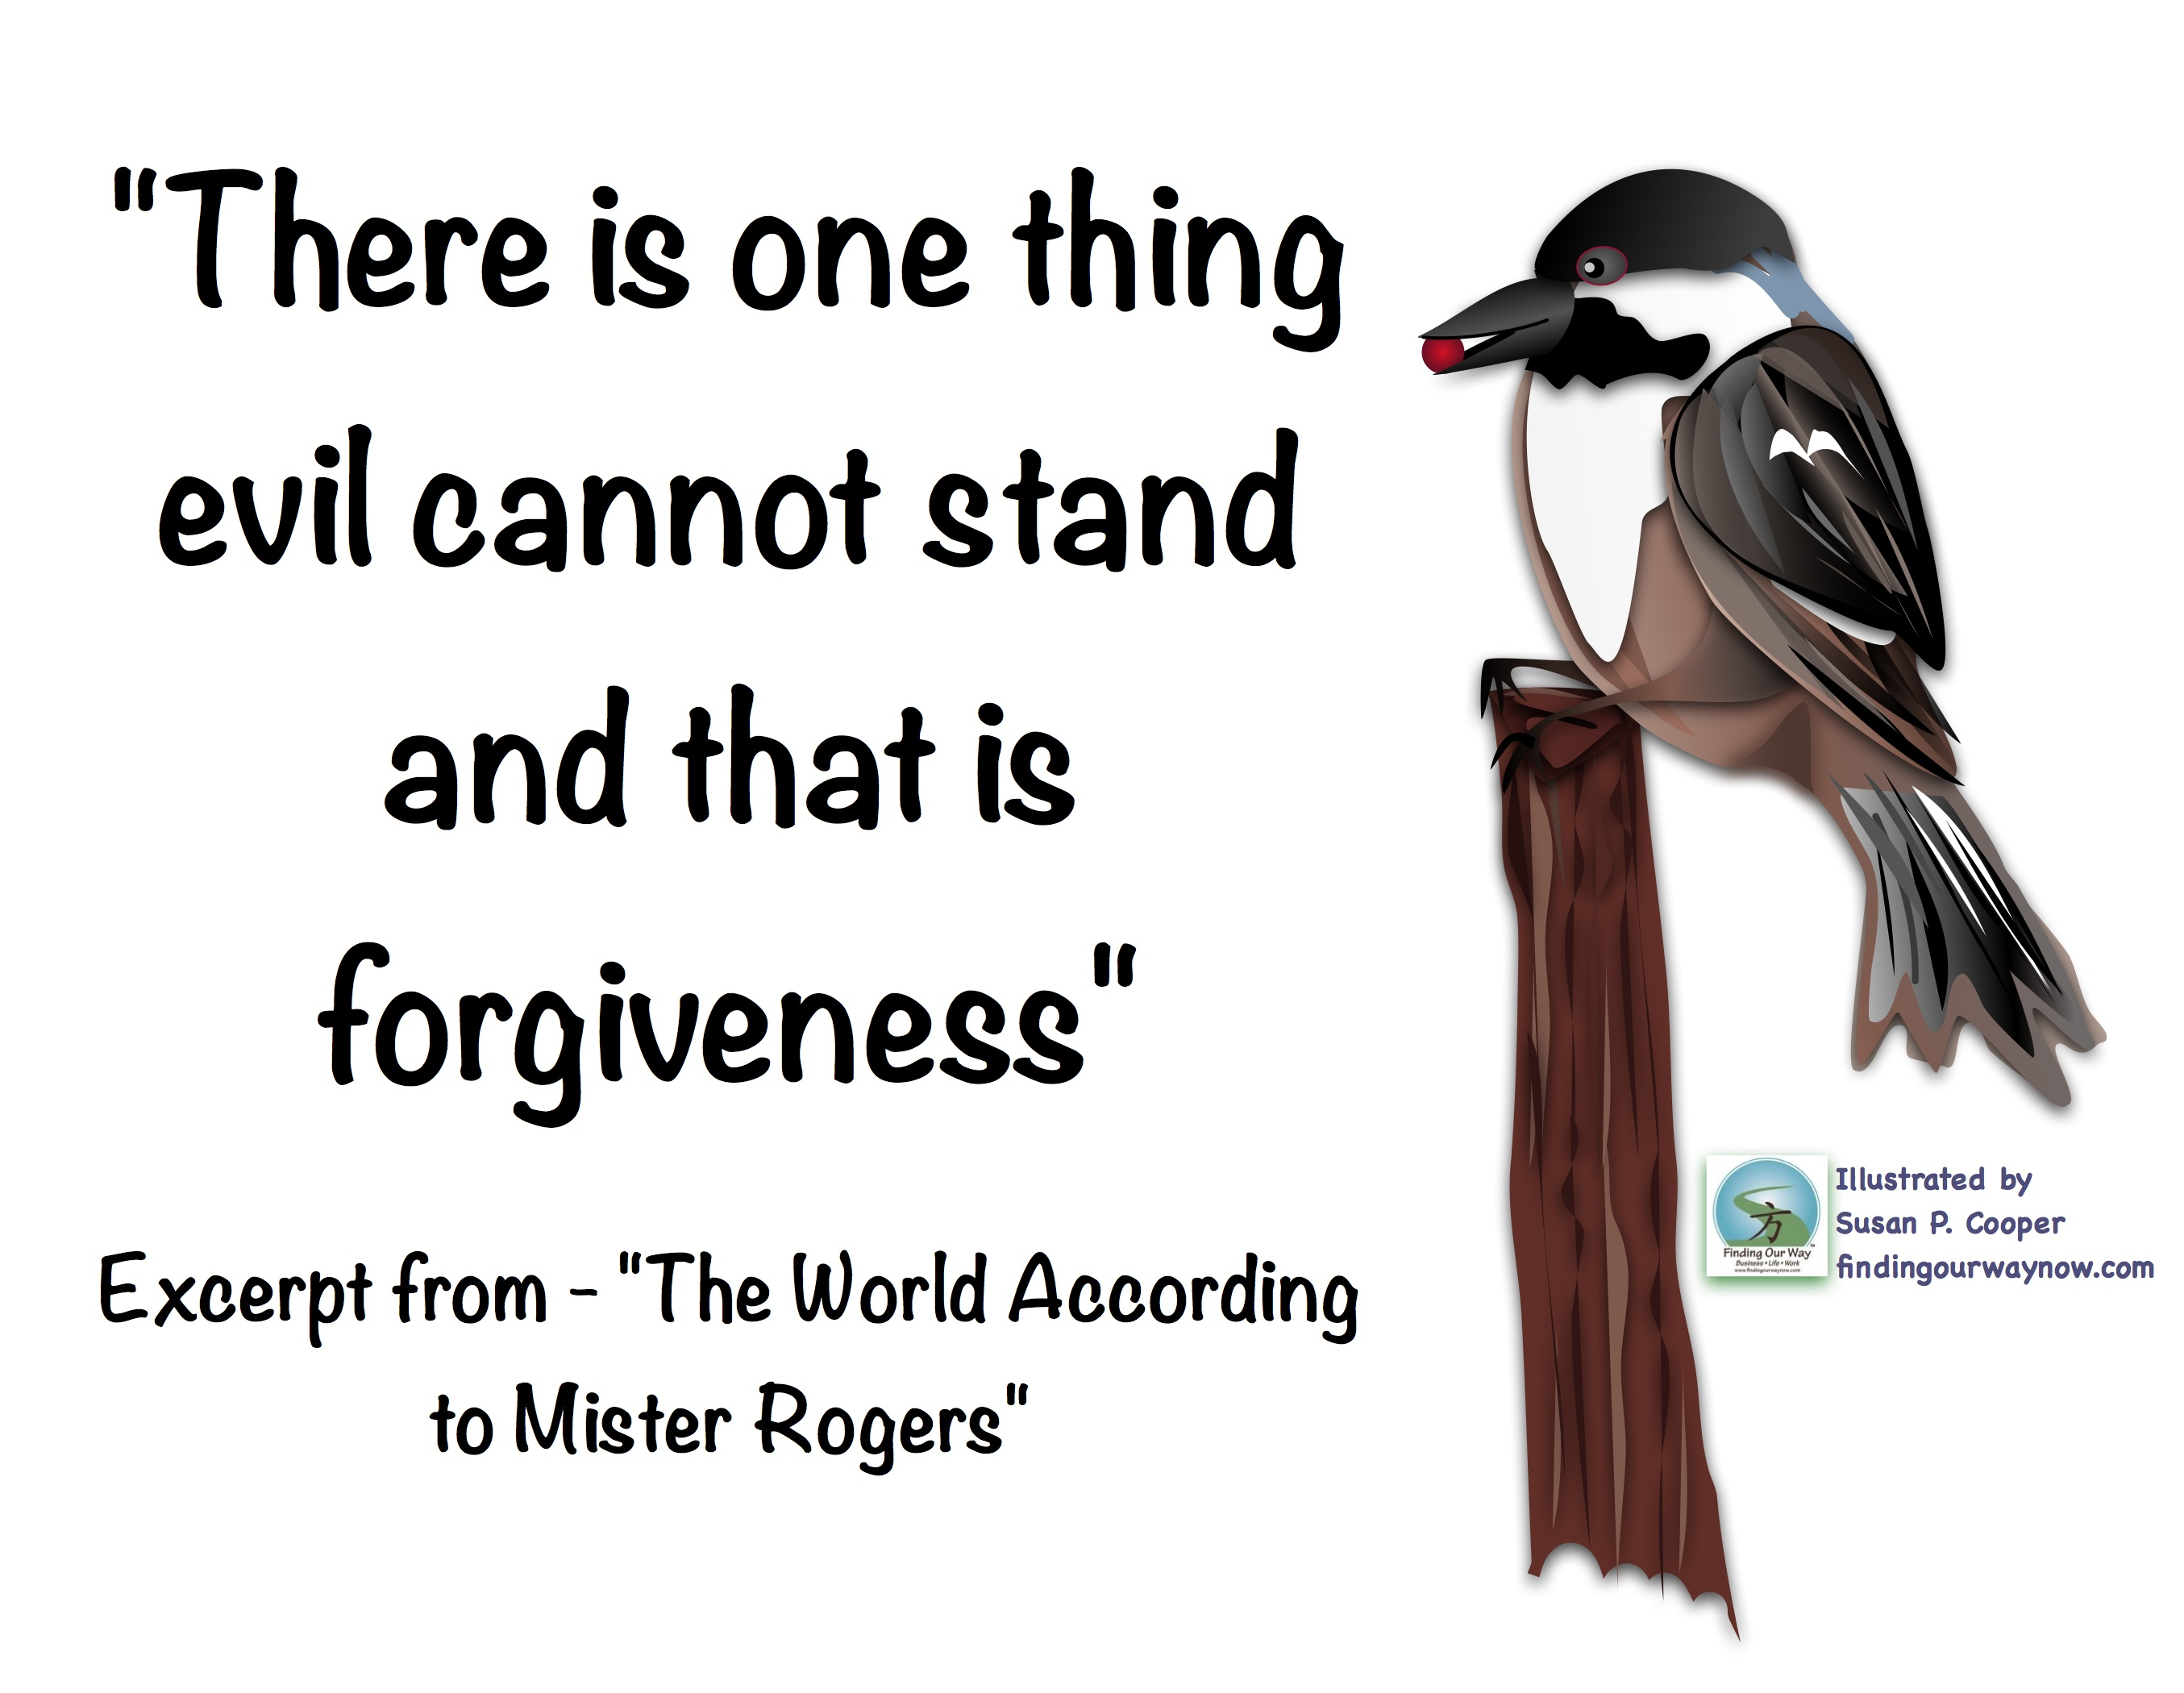 forgiveness and way Forgiveness is not letting the offense recur again and again we don't have to tolerate, nor should we keep ourselves open to, lack of respect or any form of abuse we don't have to tolerate, nor should we keep ourselves open to, lack of respect or any form of abuse.